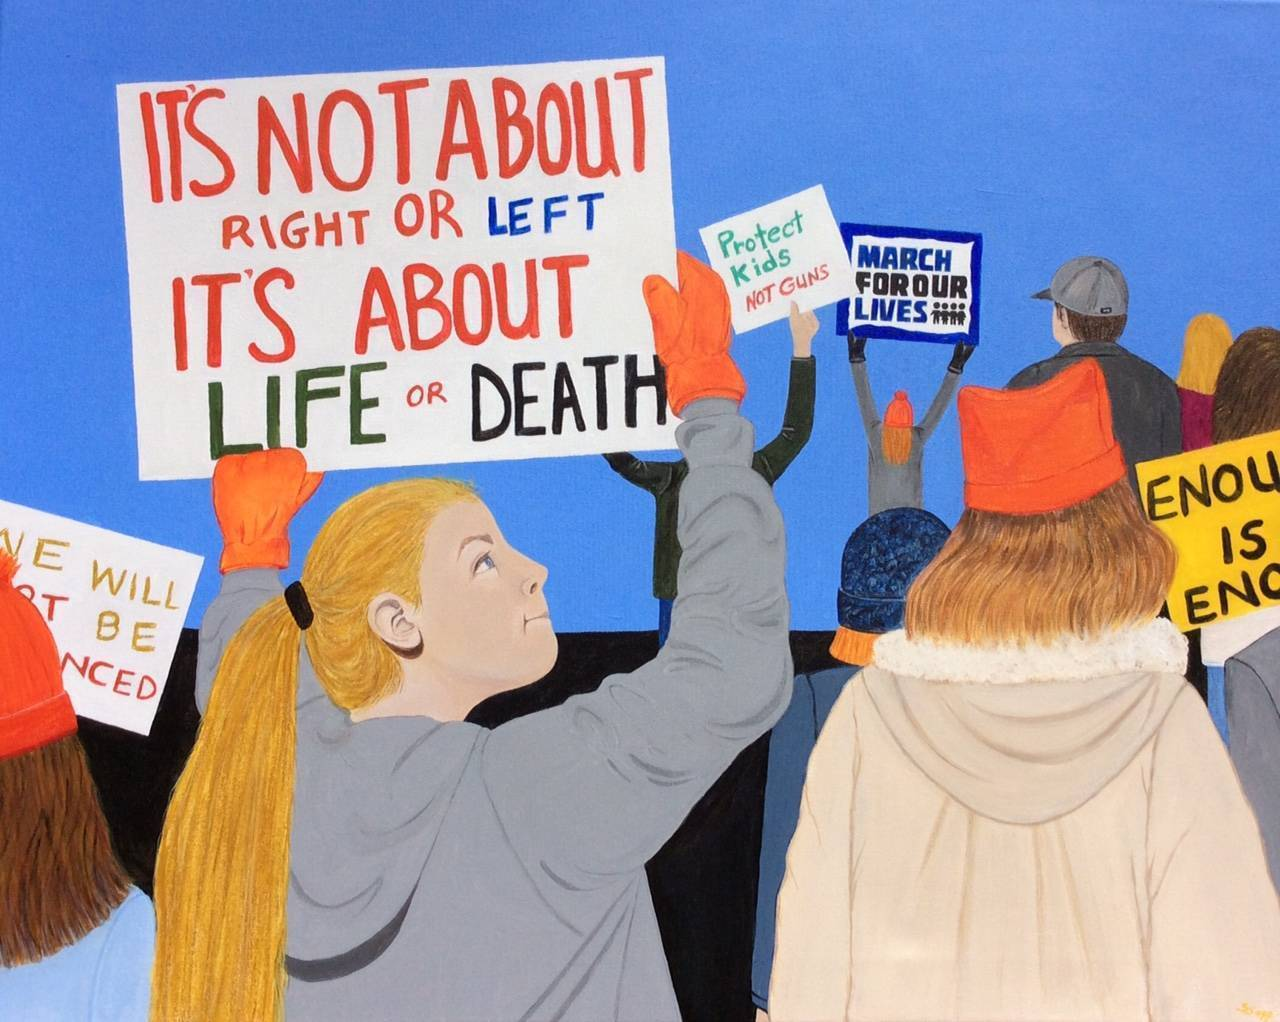 4c00ceb9125aaada27bb_4a427ad576e11aafc7ba_Signs_of_Our_Times_March_For_Our_Lives_Morristown_NJ.jpg